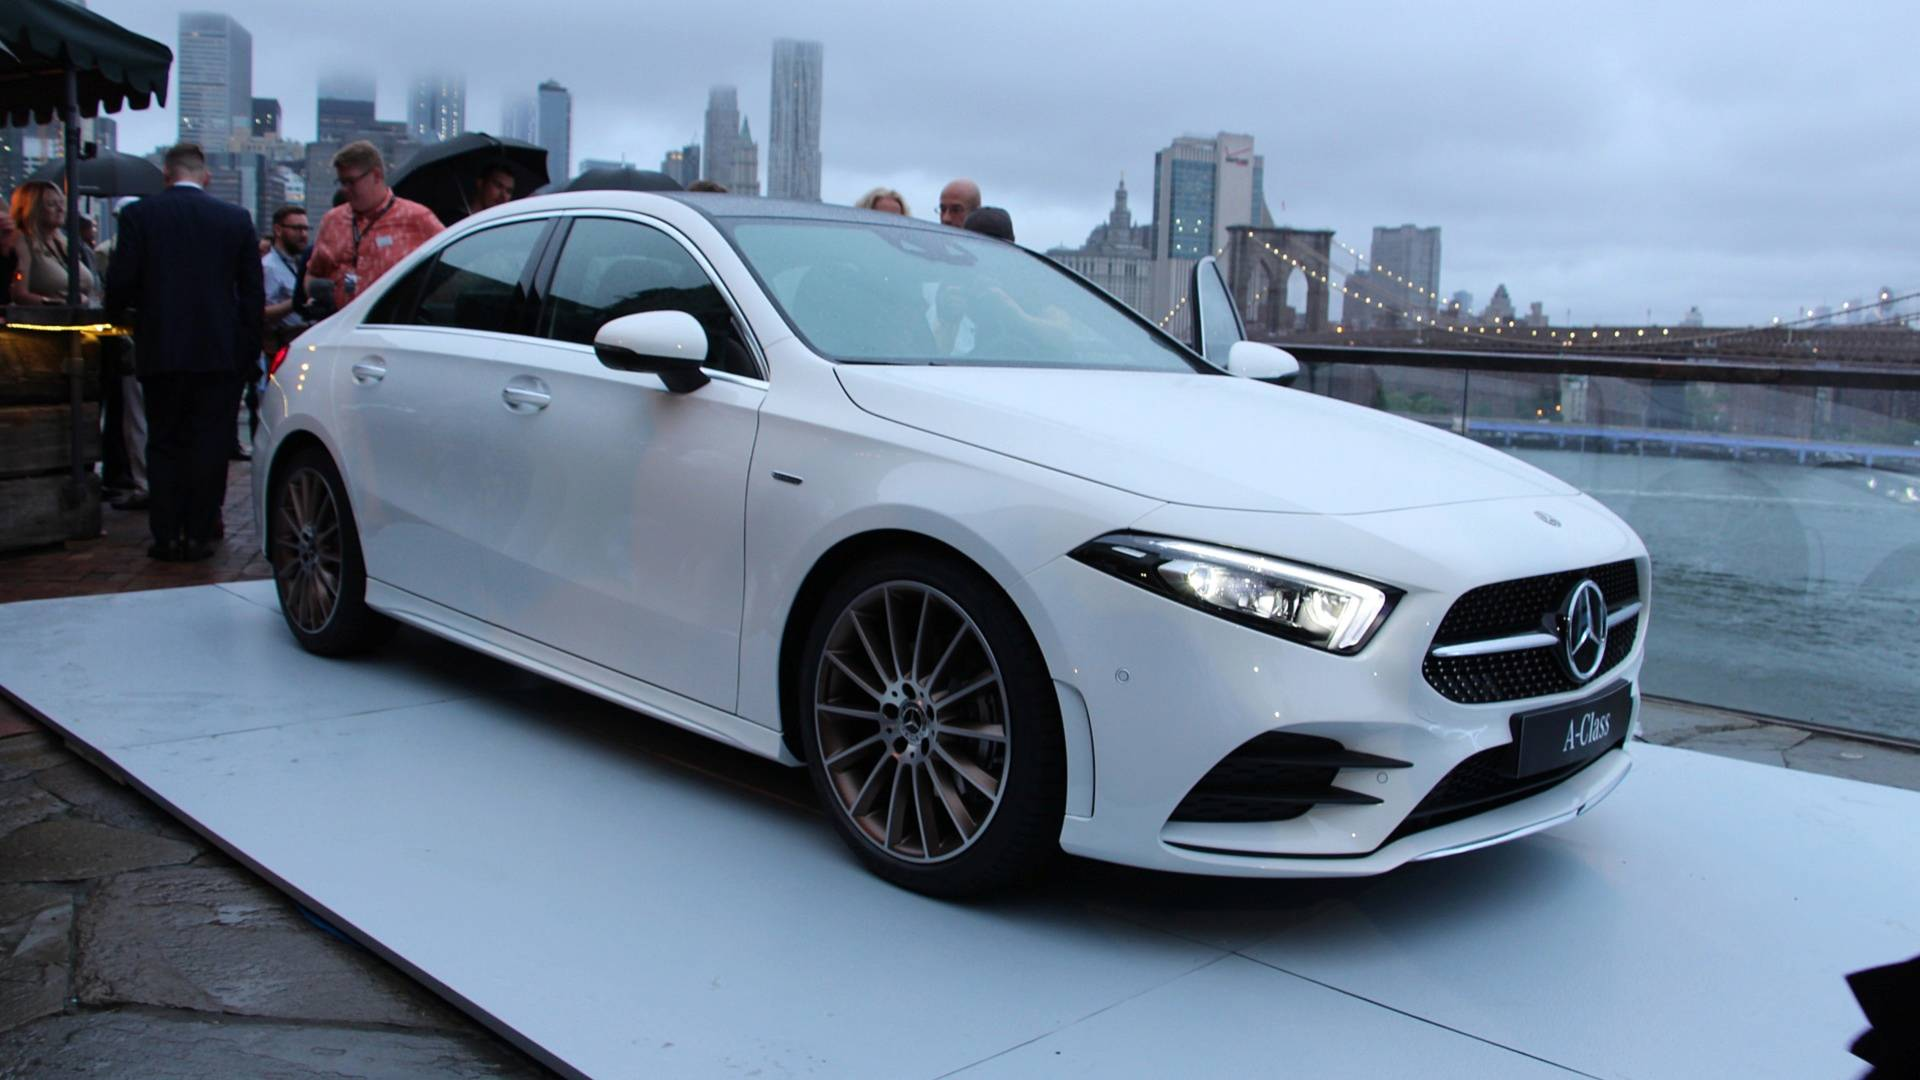 2019 Mercedes A Class Sedan Blends Sleek Styling With Lots Of Tech